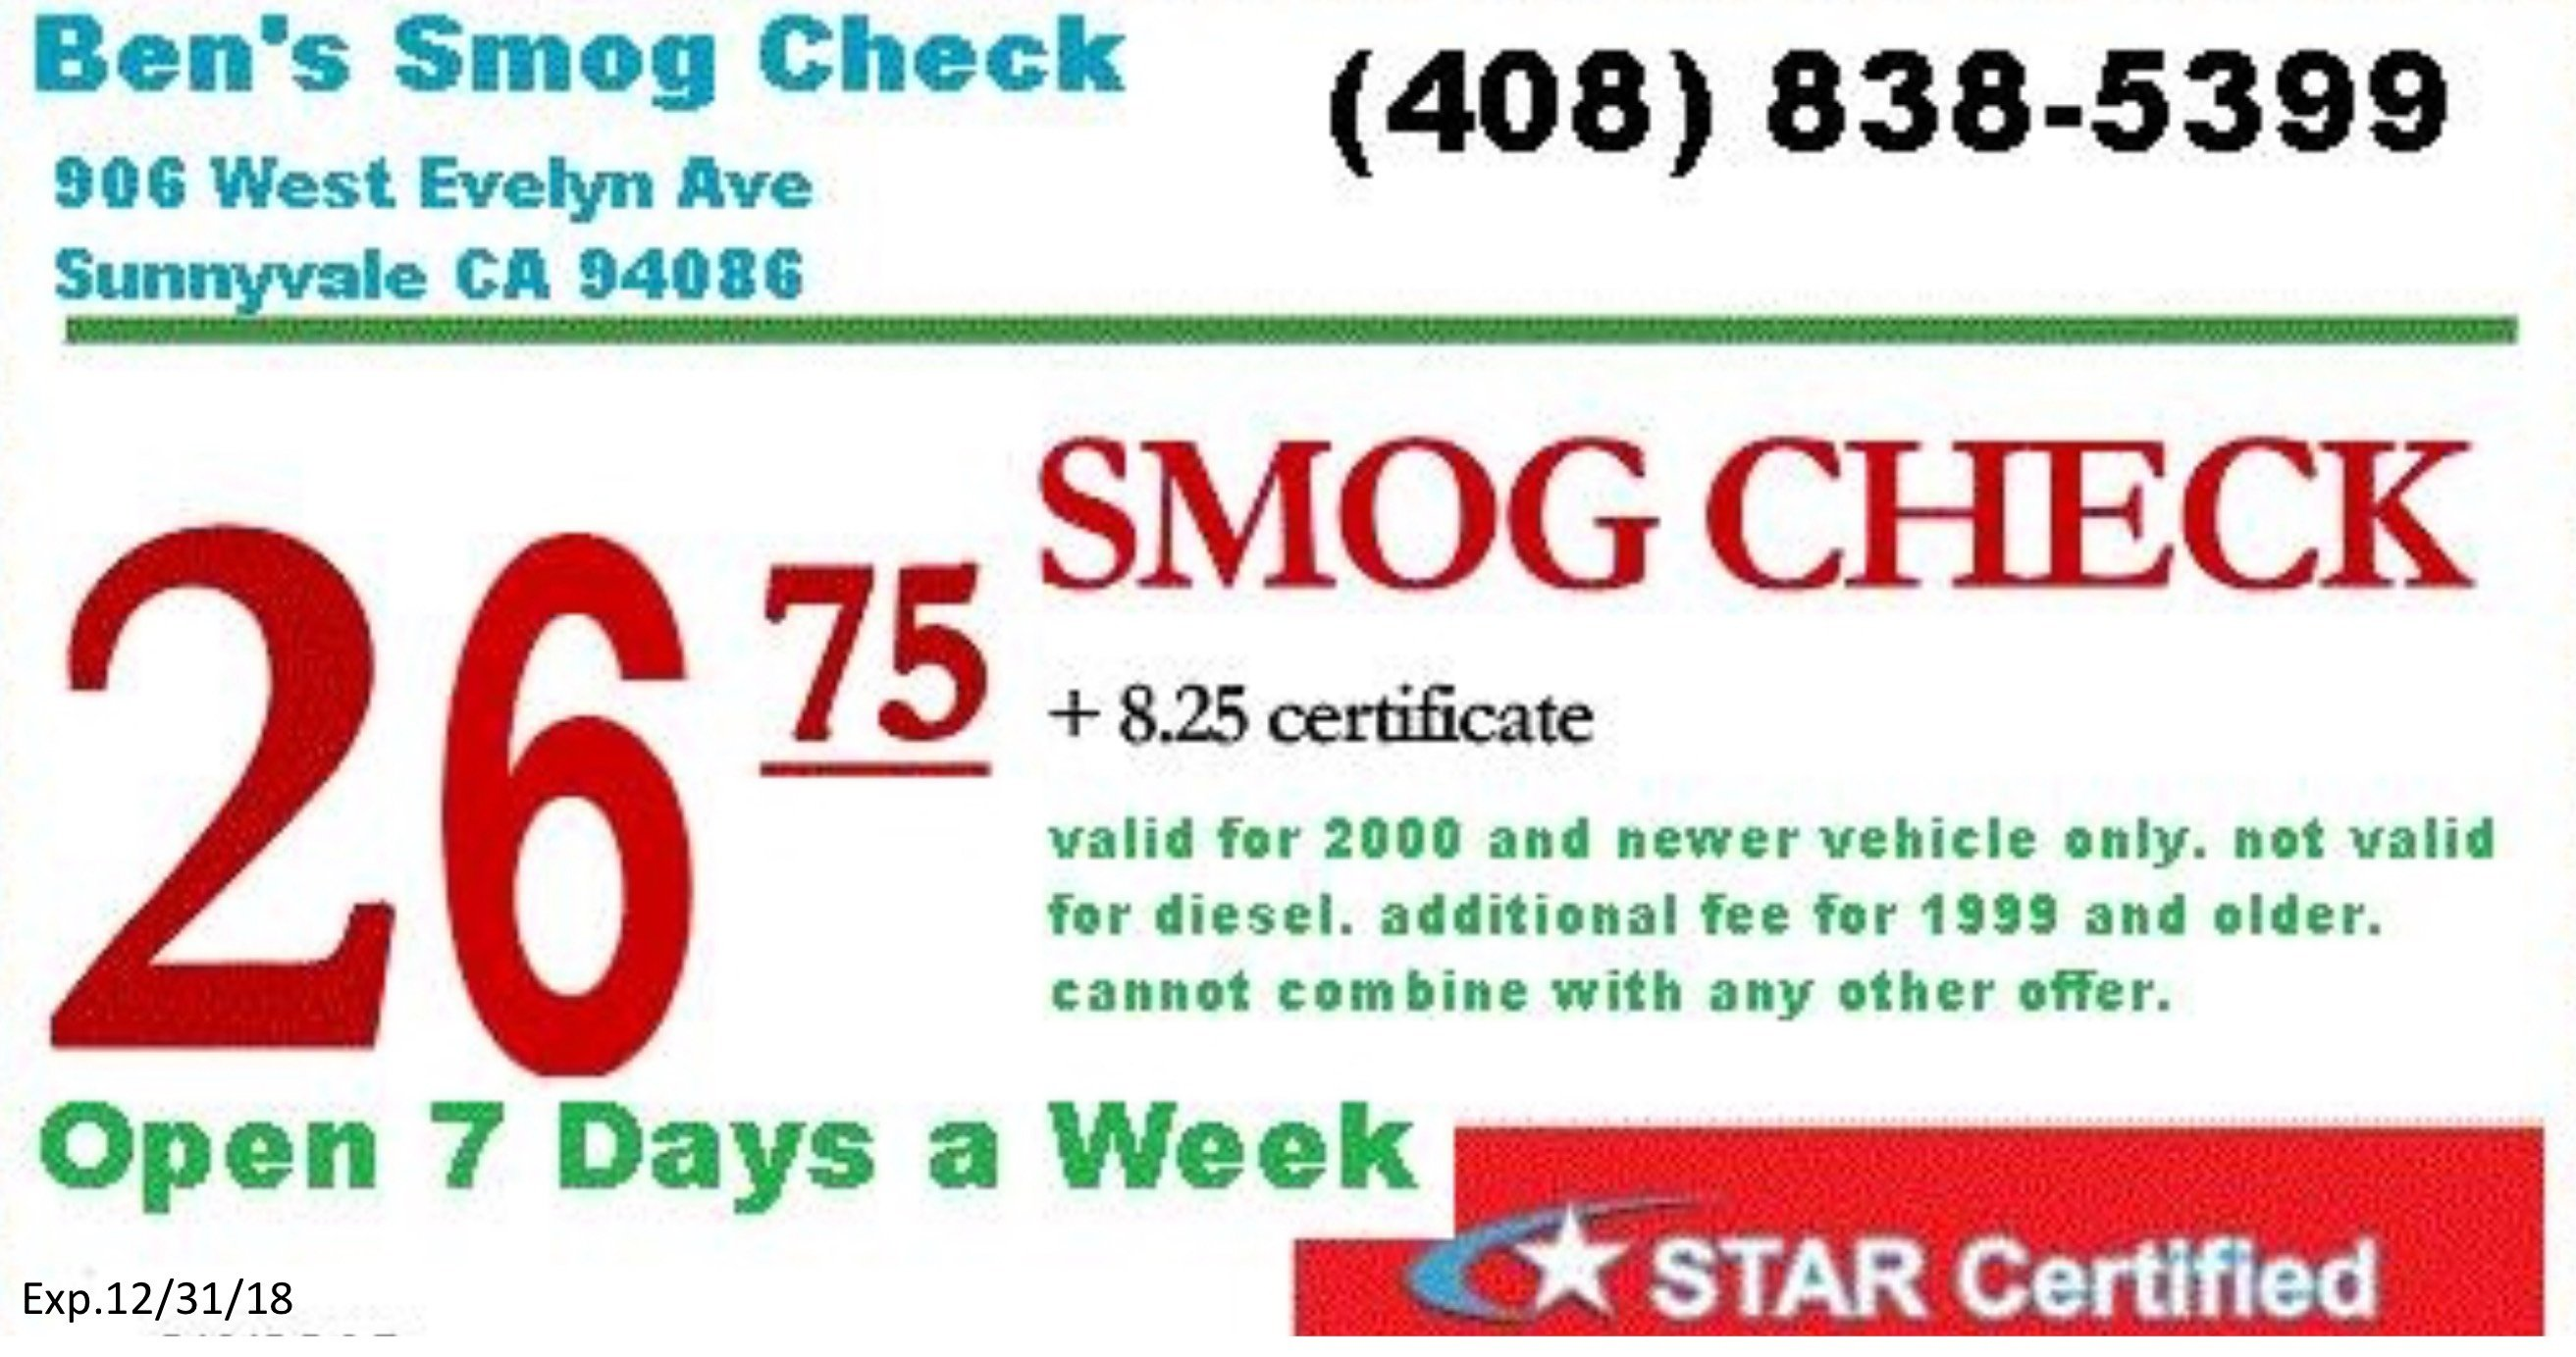 Redeem at Ben's Smog Check